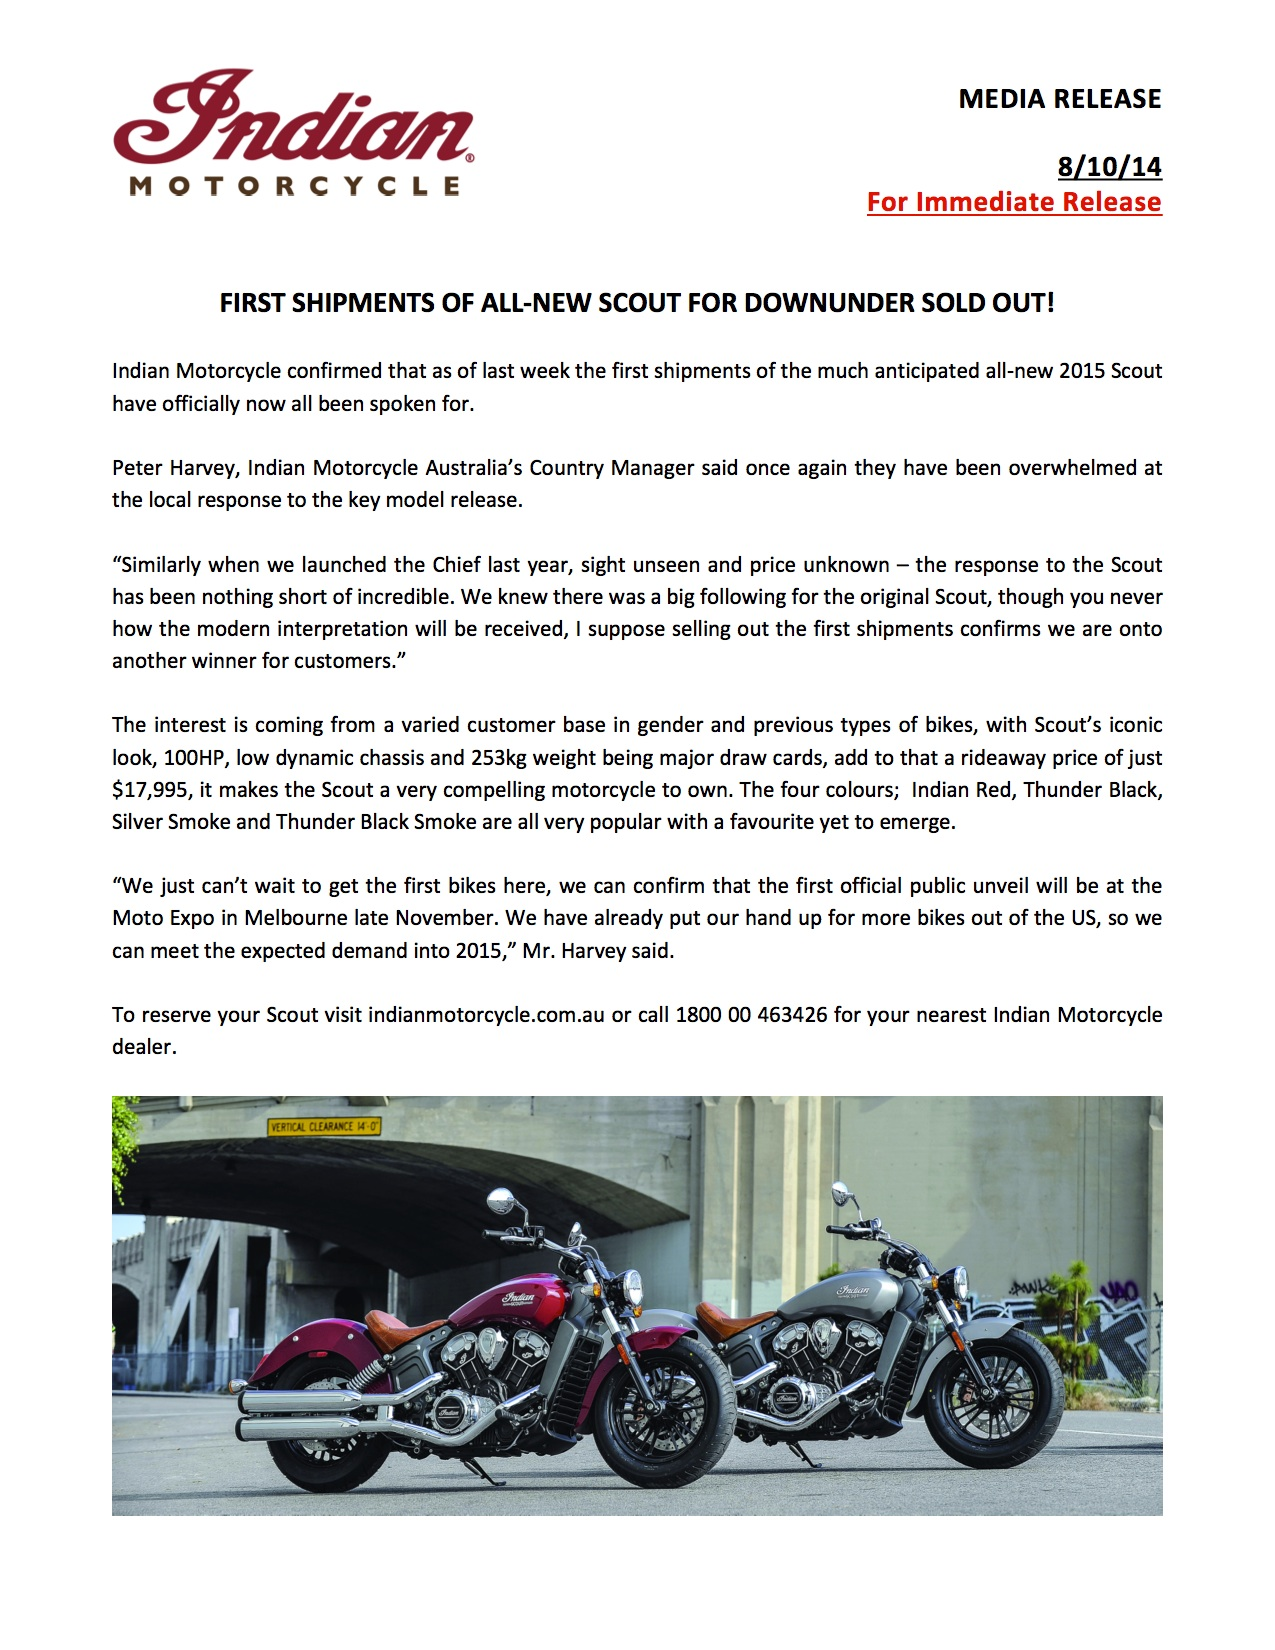 Indian Motorcycle Australia Press Release - Scout First Shipments Sold Out